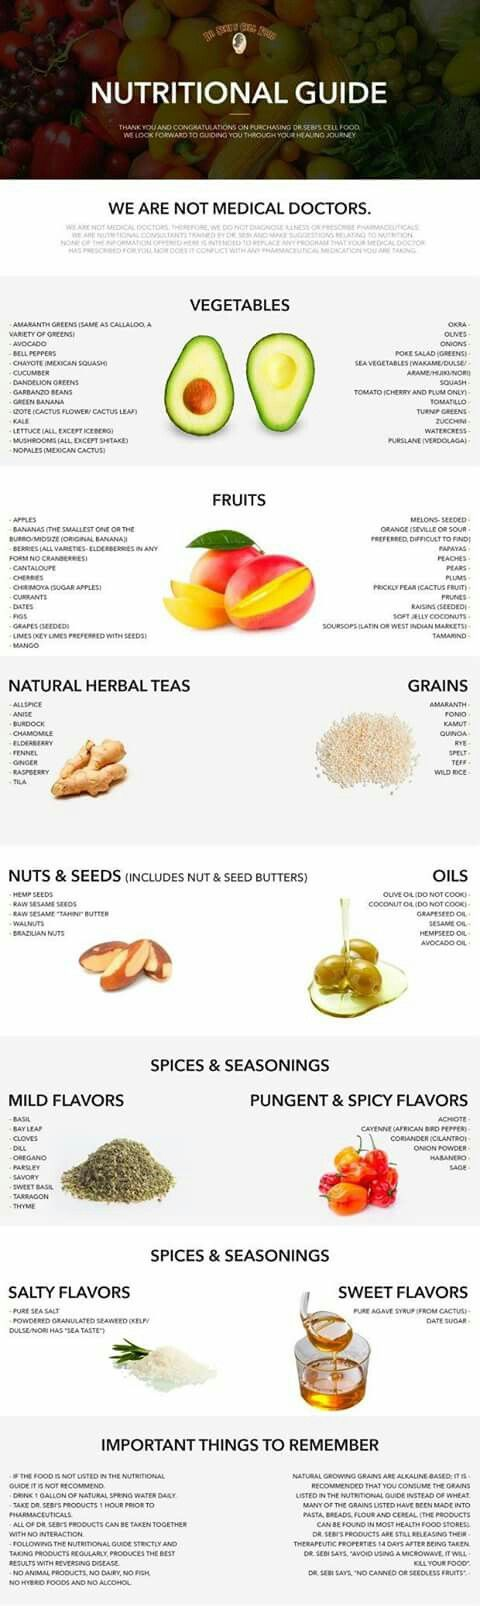 Dr. Sebi nutritional guide (green bananas have been removed)***